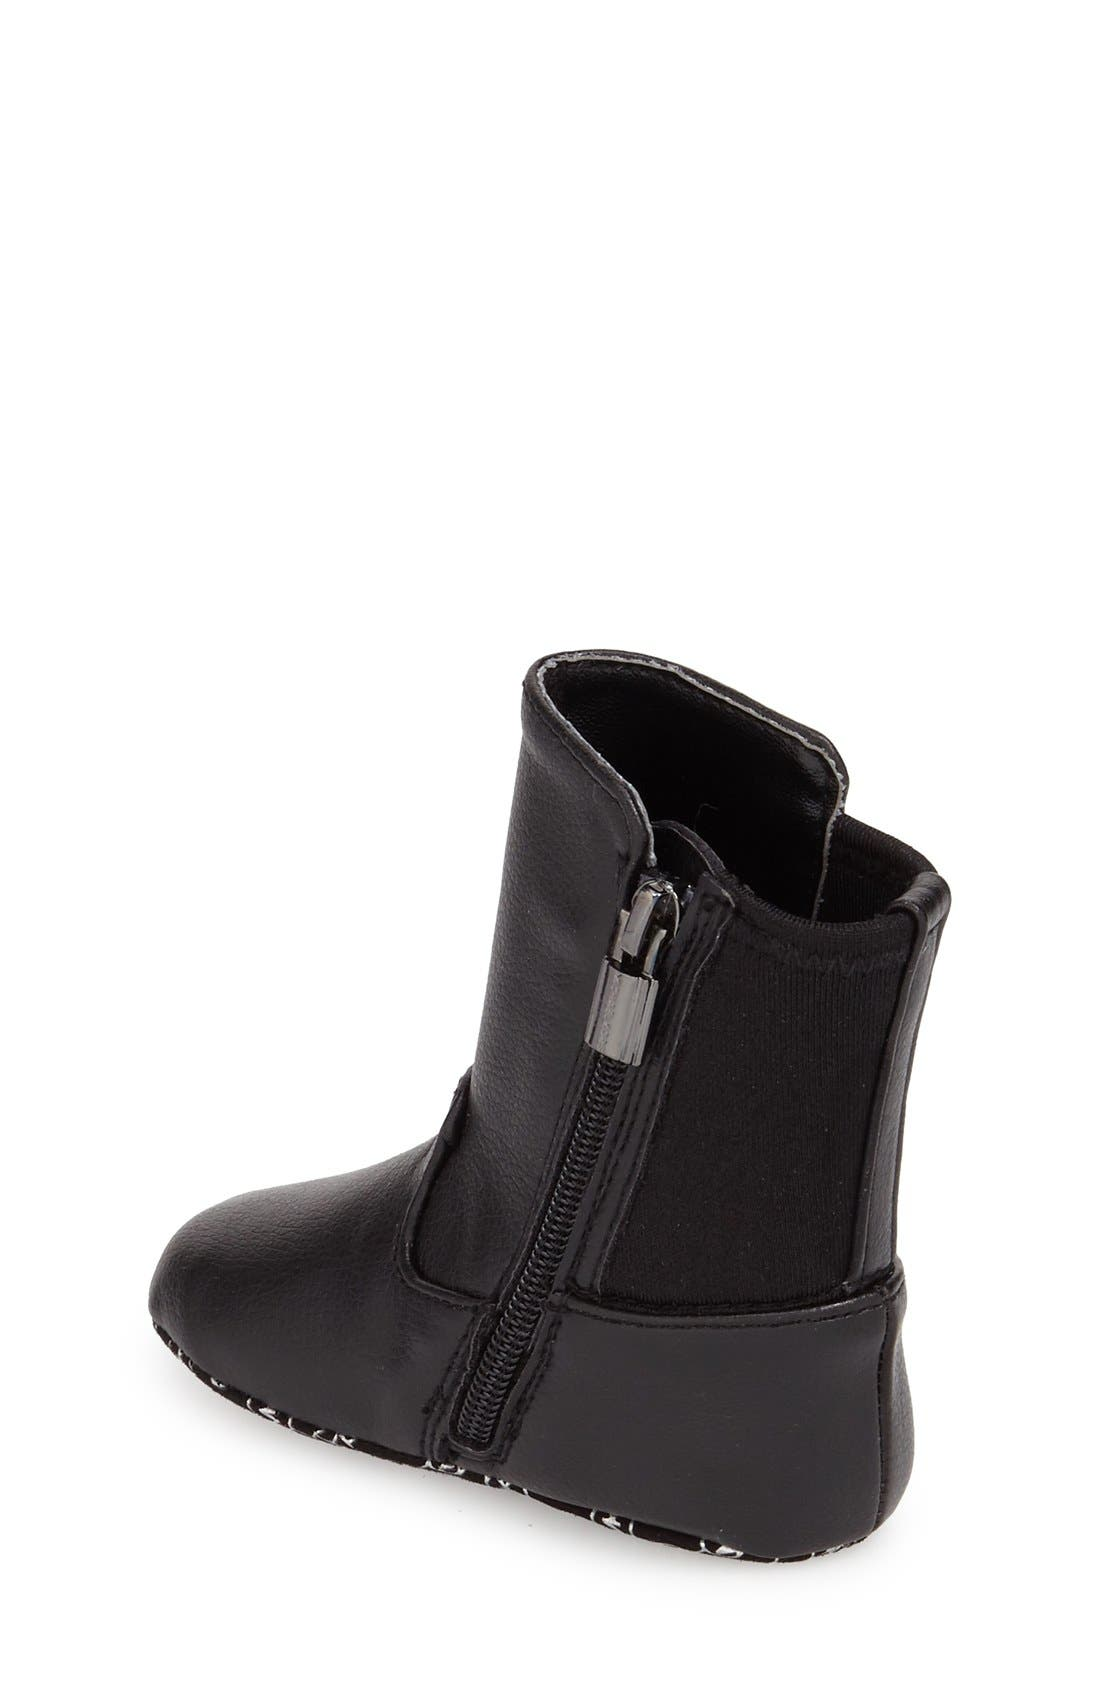 'Lily' Boot,                             Alternate thumbnail 4, color,                             001